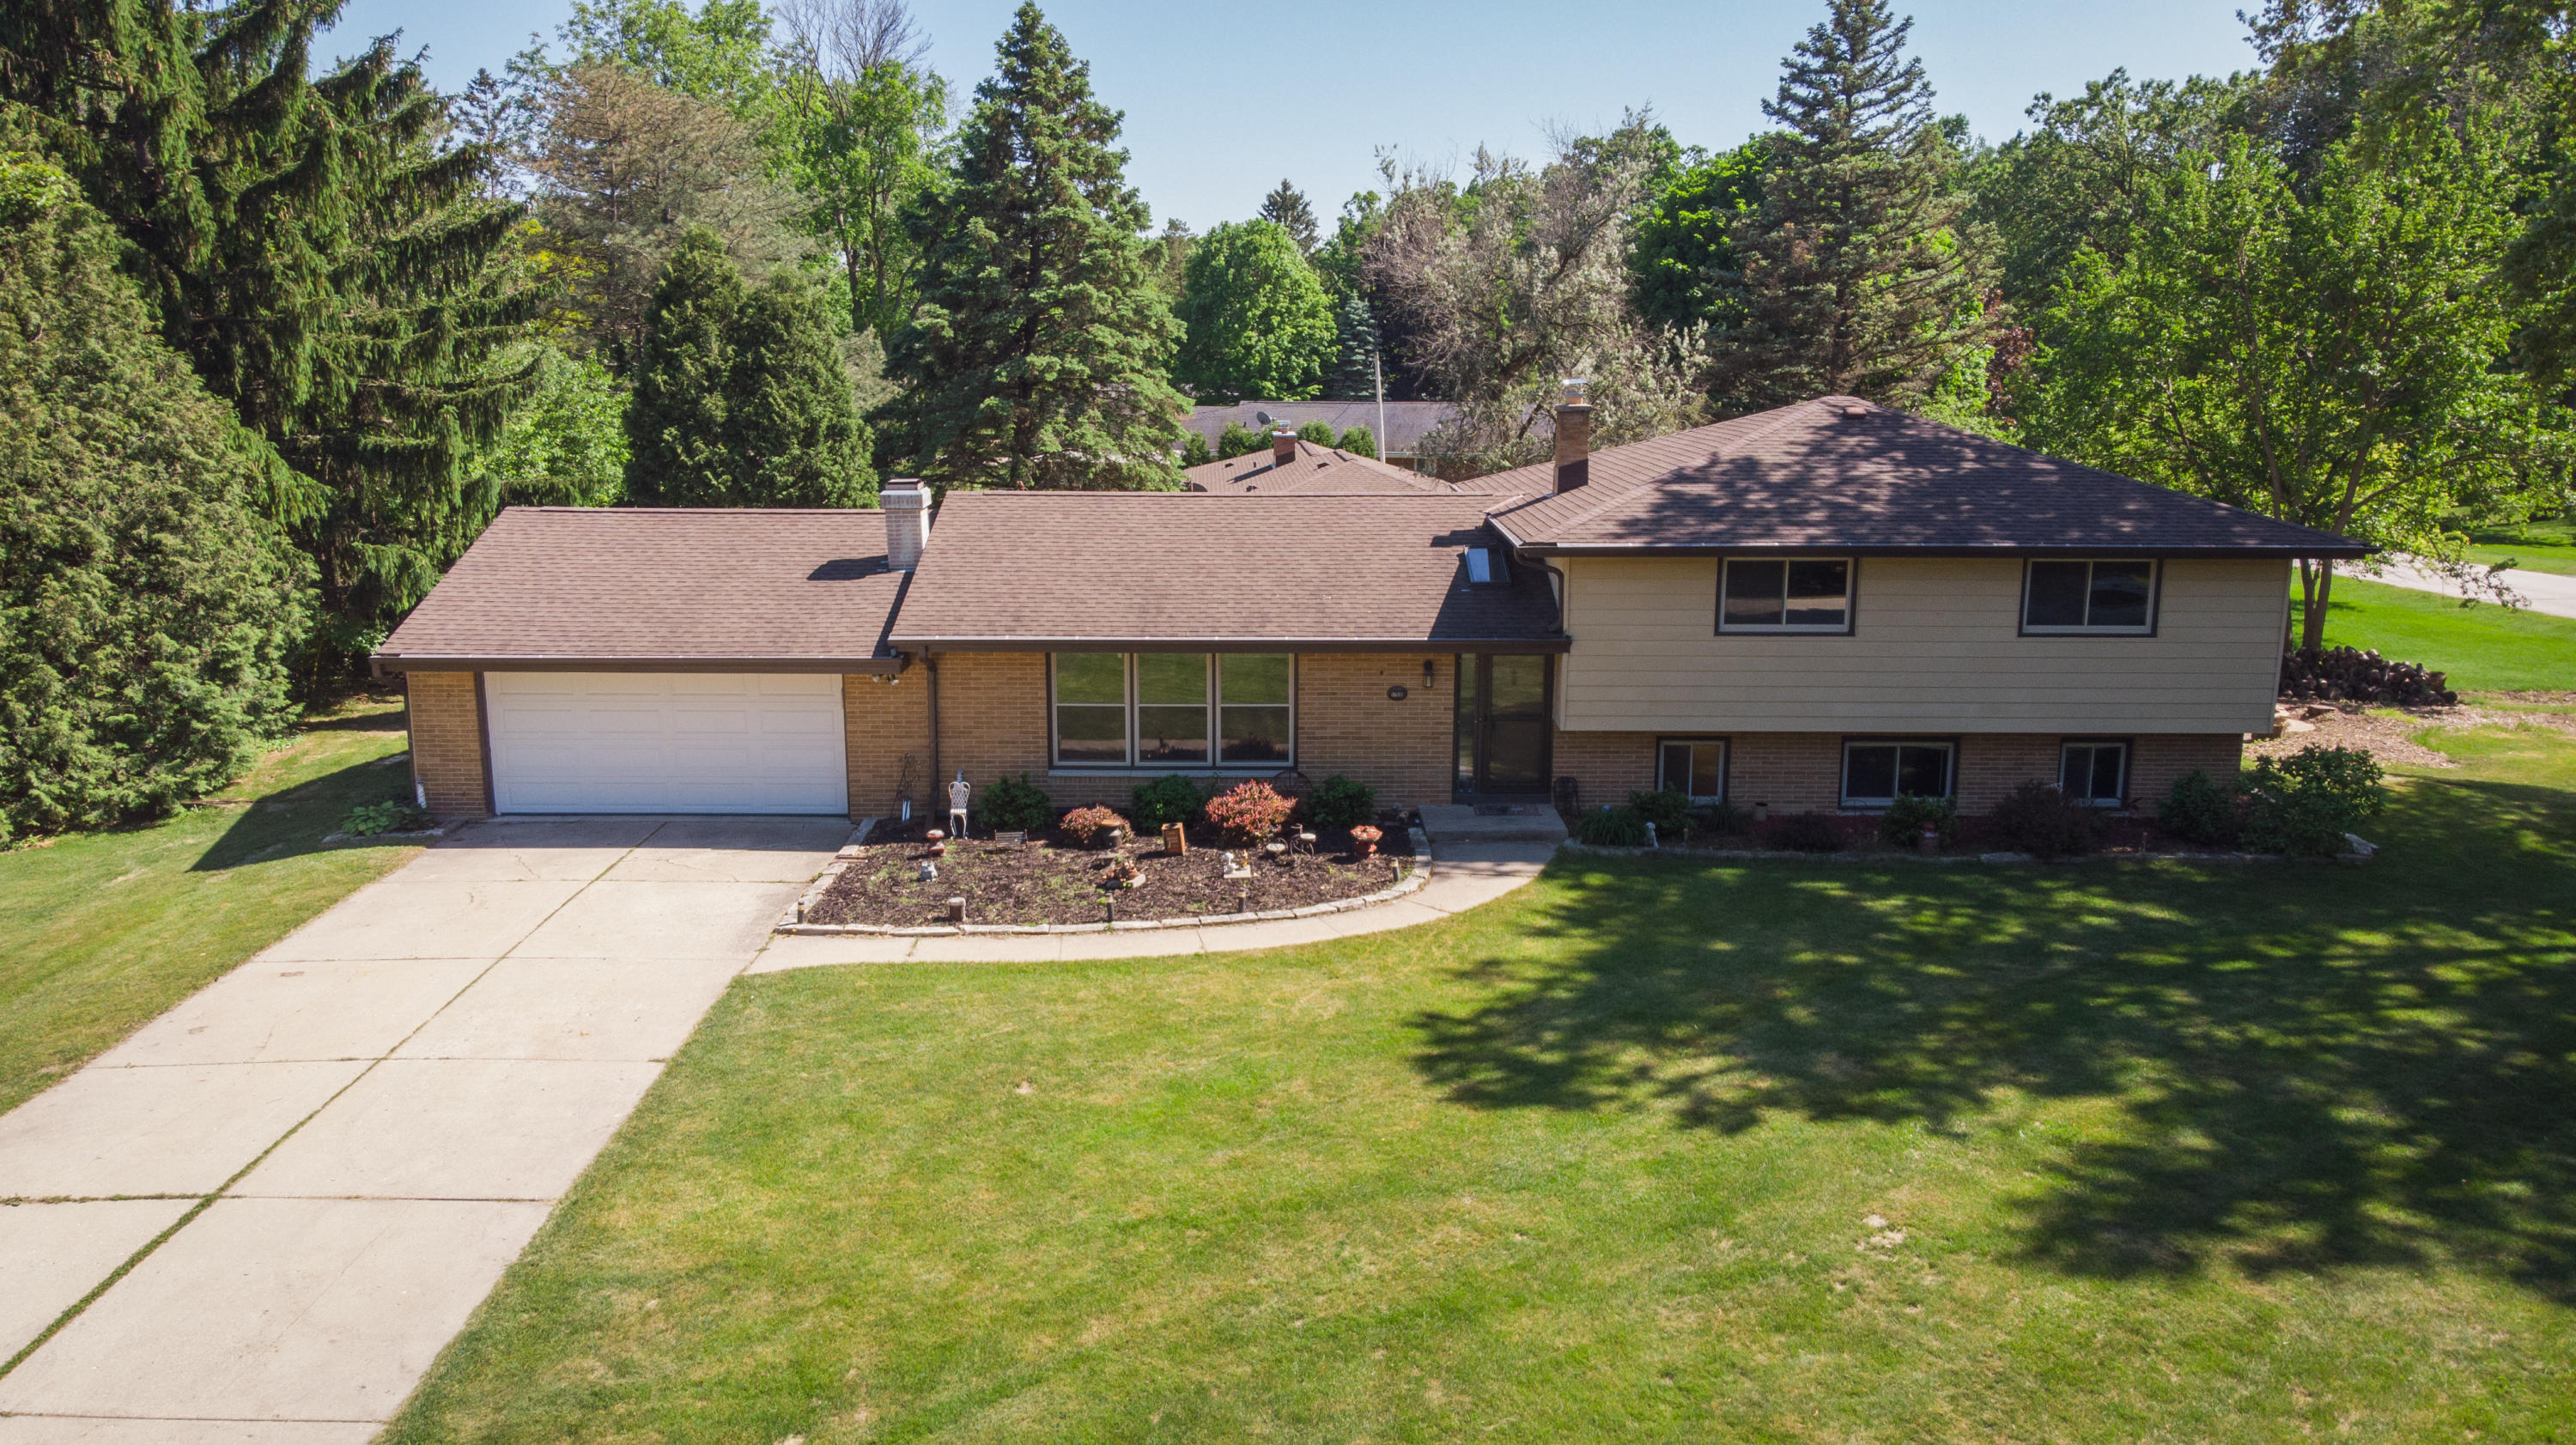 17935 Windemere Rd, Brookfield, Wisconsin 53045, 4 Bedrooms Bedrooms, 9 Rooms Rooms,2 BathroomsBathrooms,Single-Family,For Sale,Windemere Rd,1692591